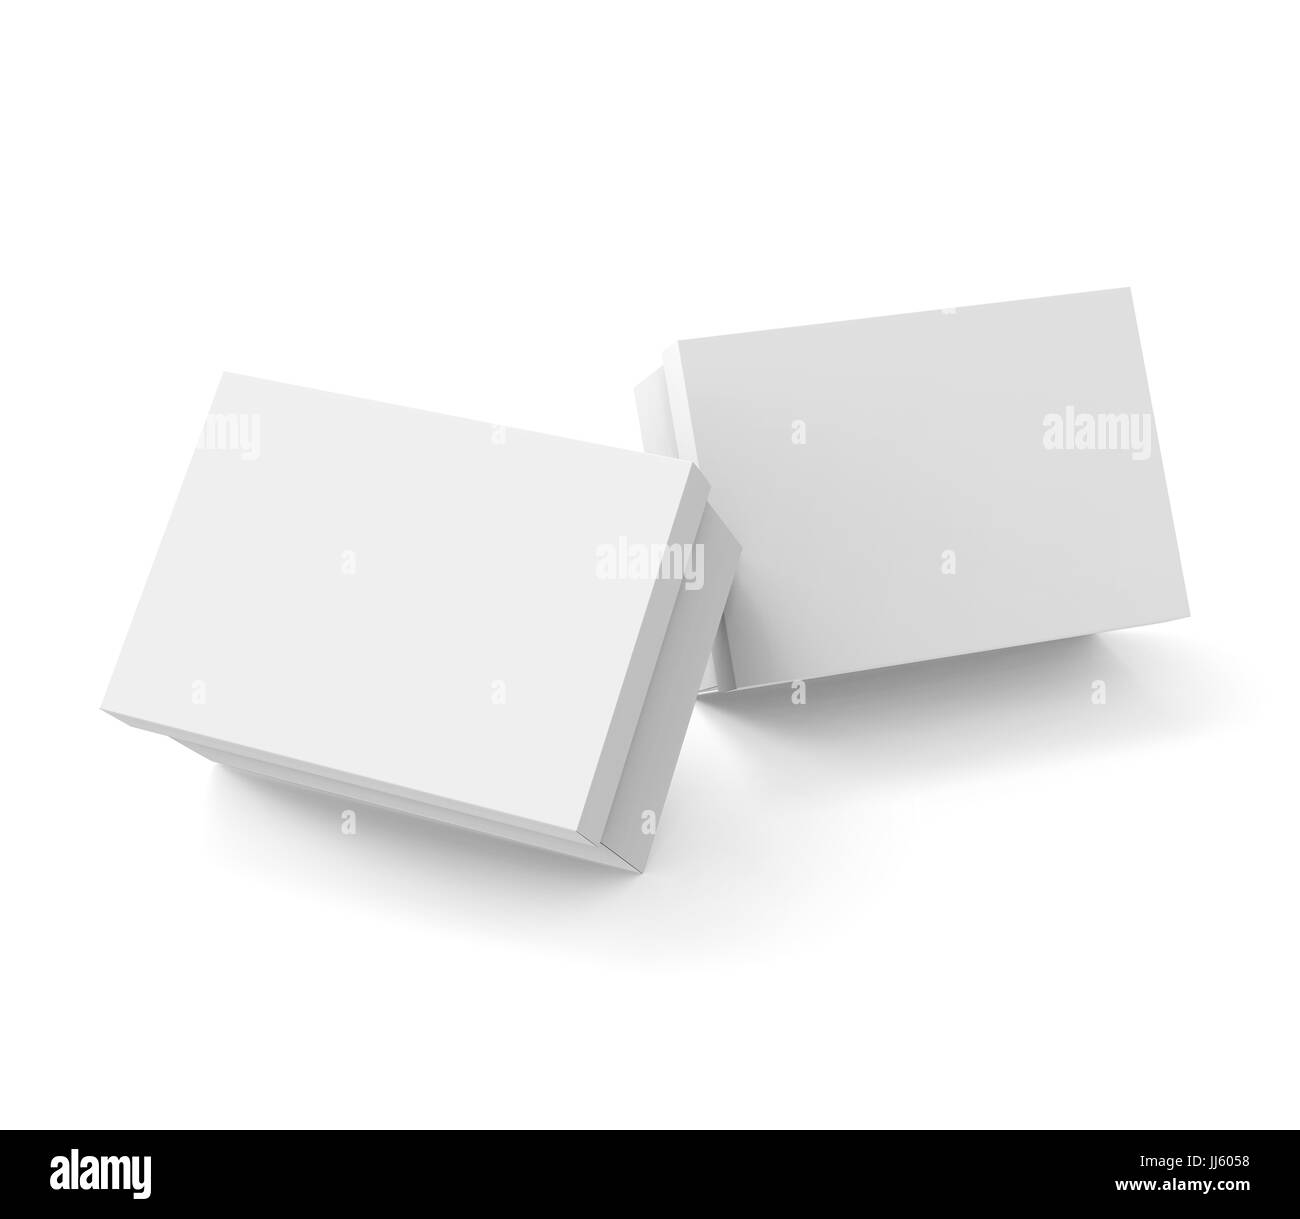 Blank paper box template two boxes mockup with lid in 3d rendering blank paper box template two boxes mockup with lid in 3d rendering elevated view maxwellsz